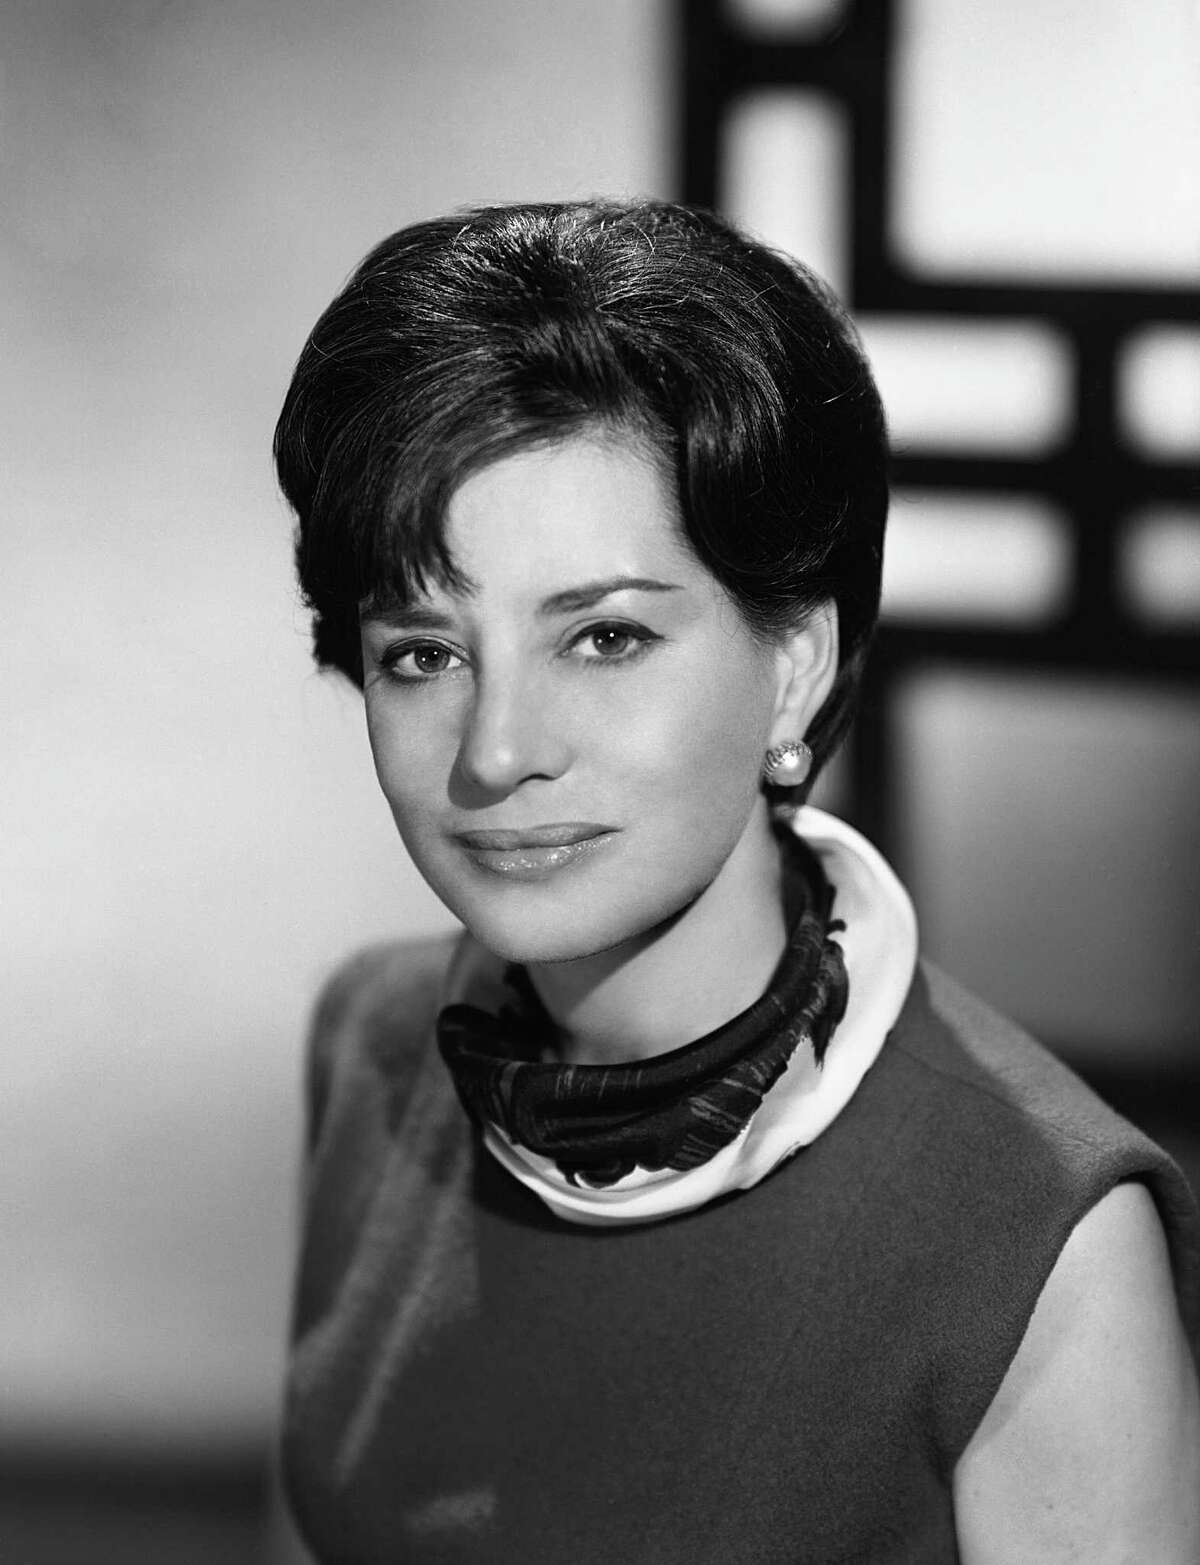 Newswoman Barbara Walters is 86 (this photo is from 1964).